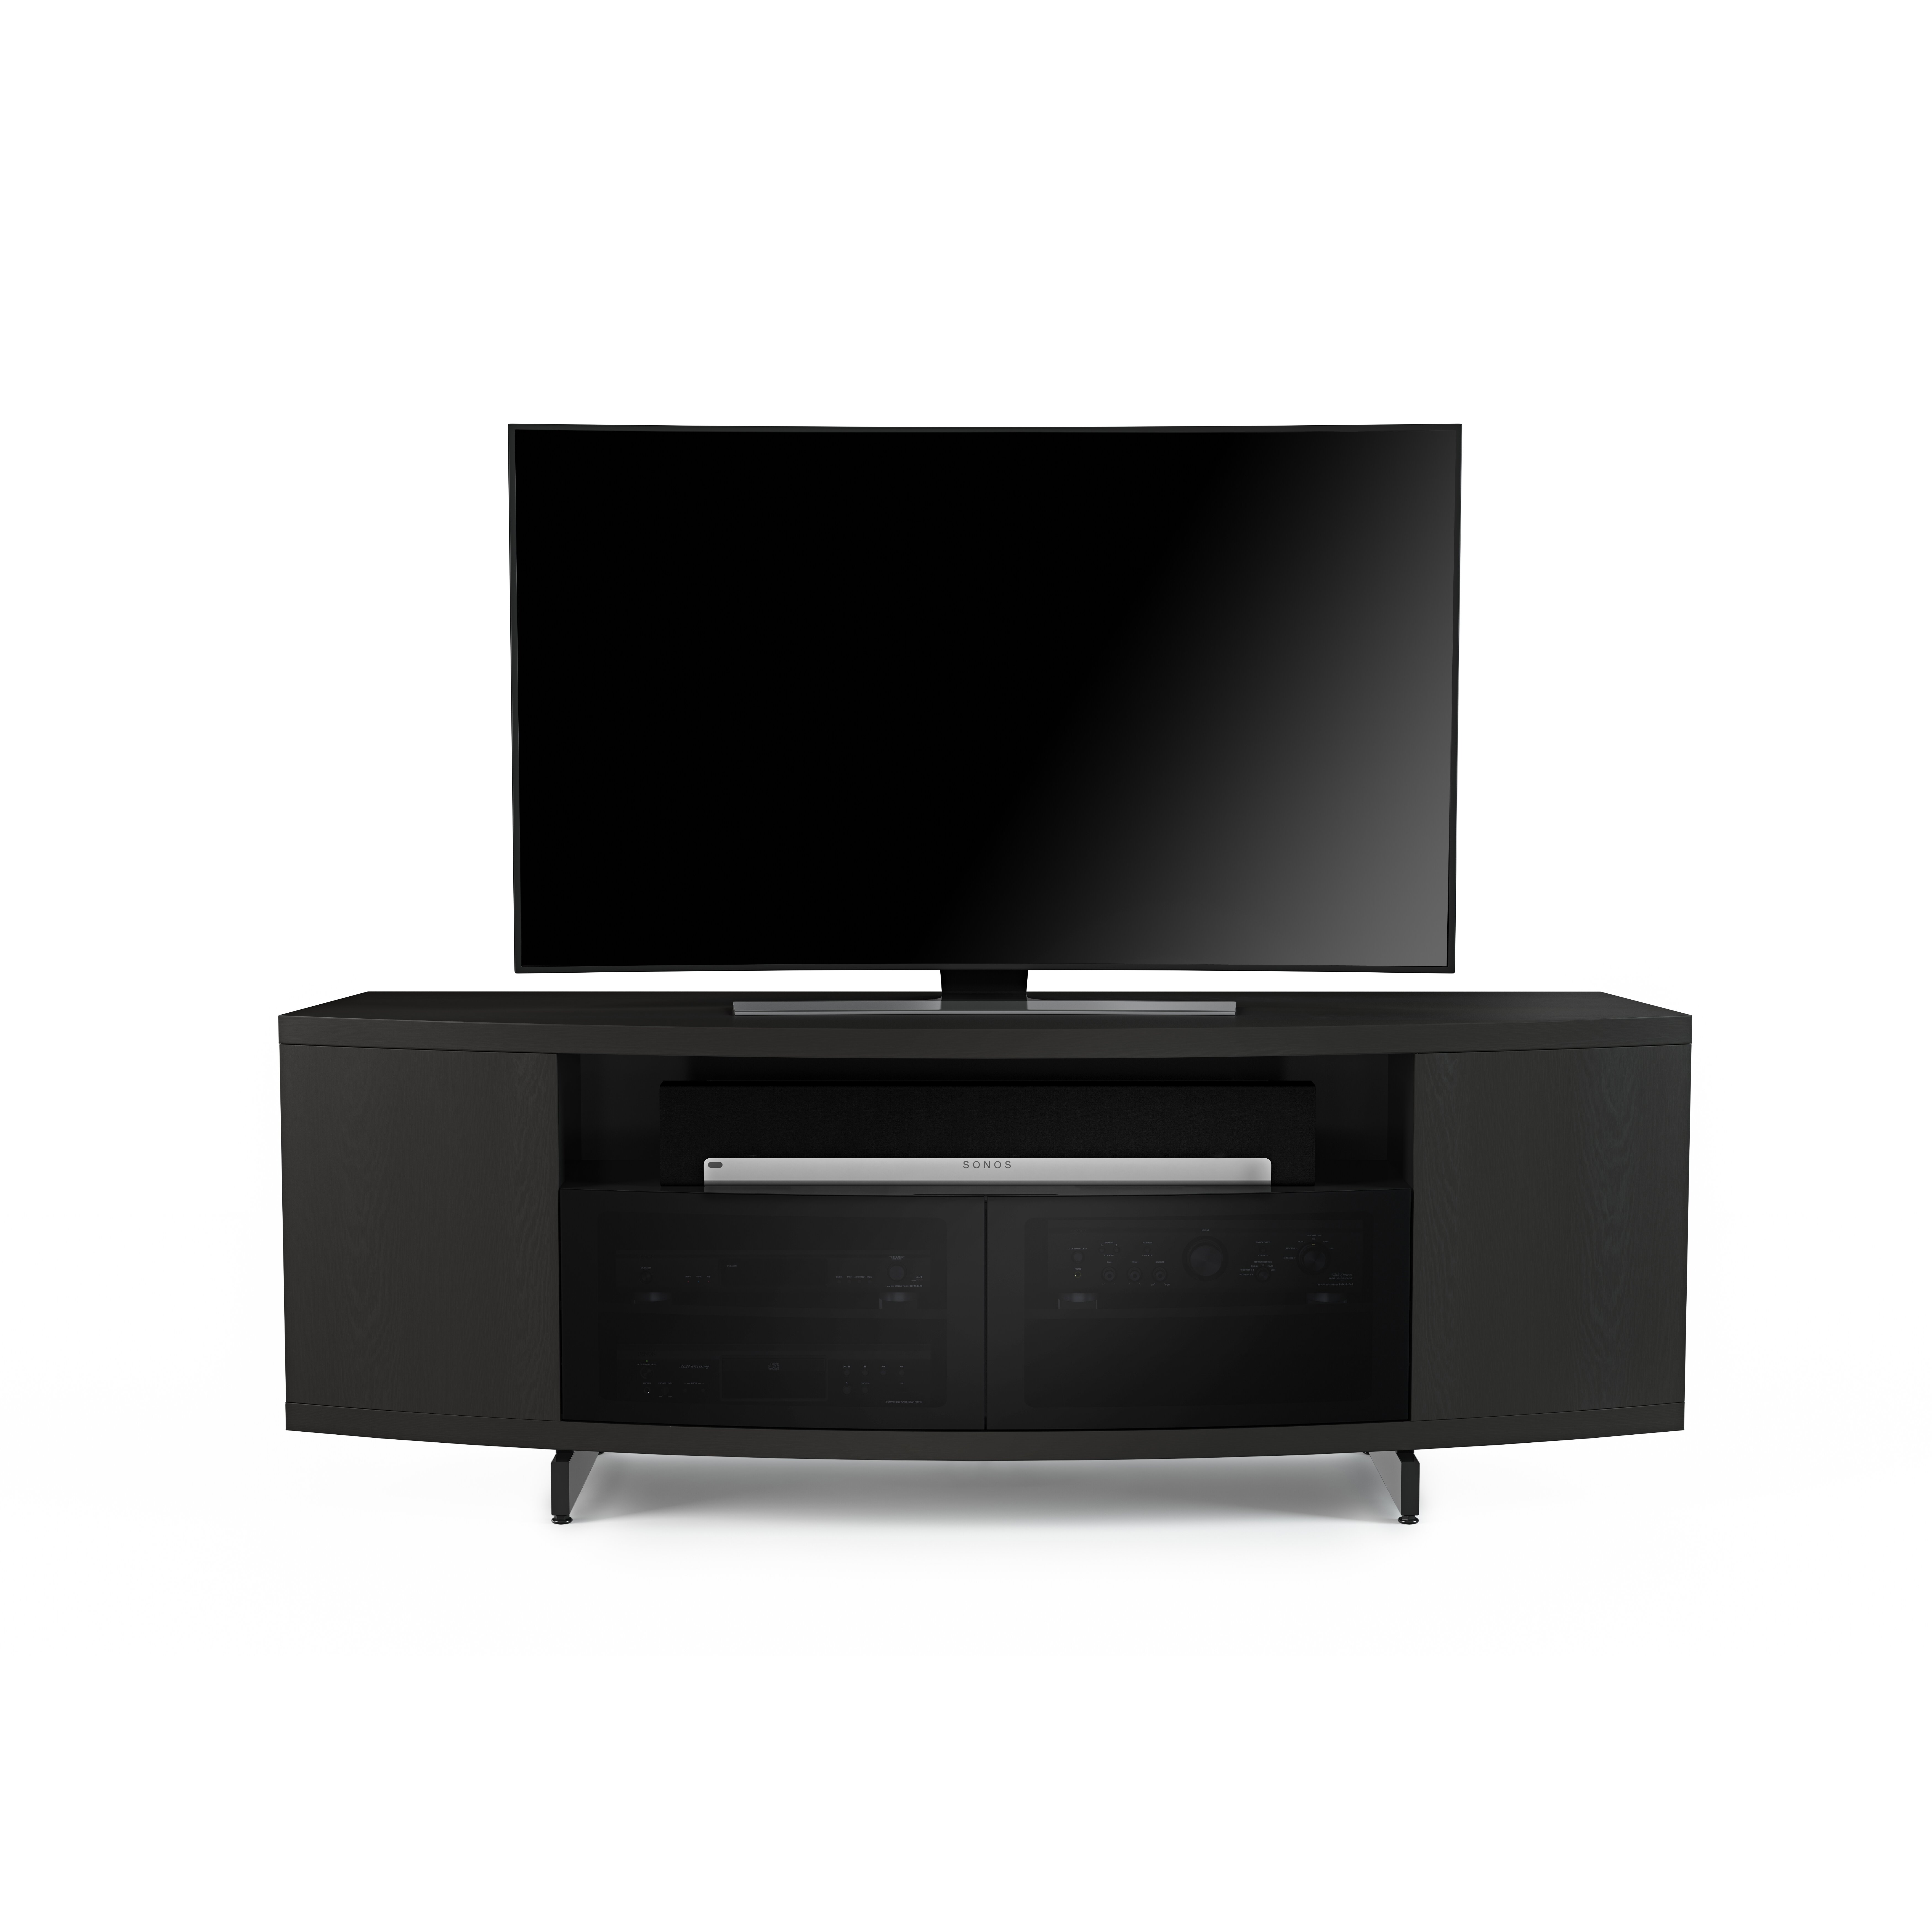 bdi usa sweep triple width tv stand reviews ca bdi sweep triple width tv stand